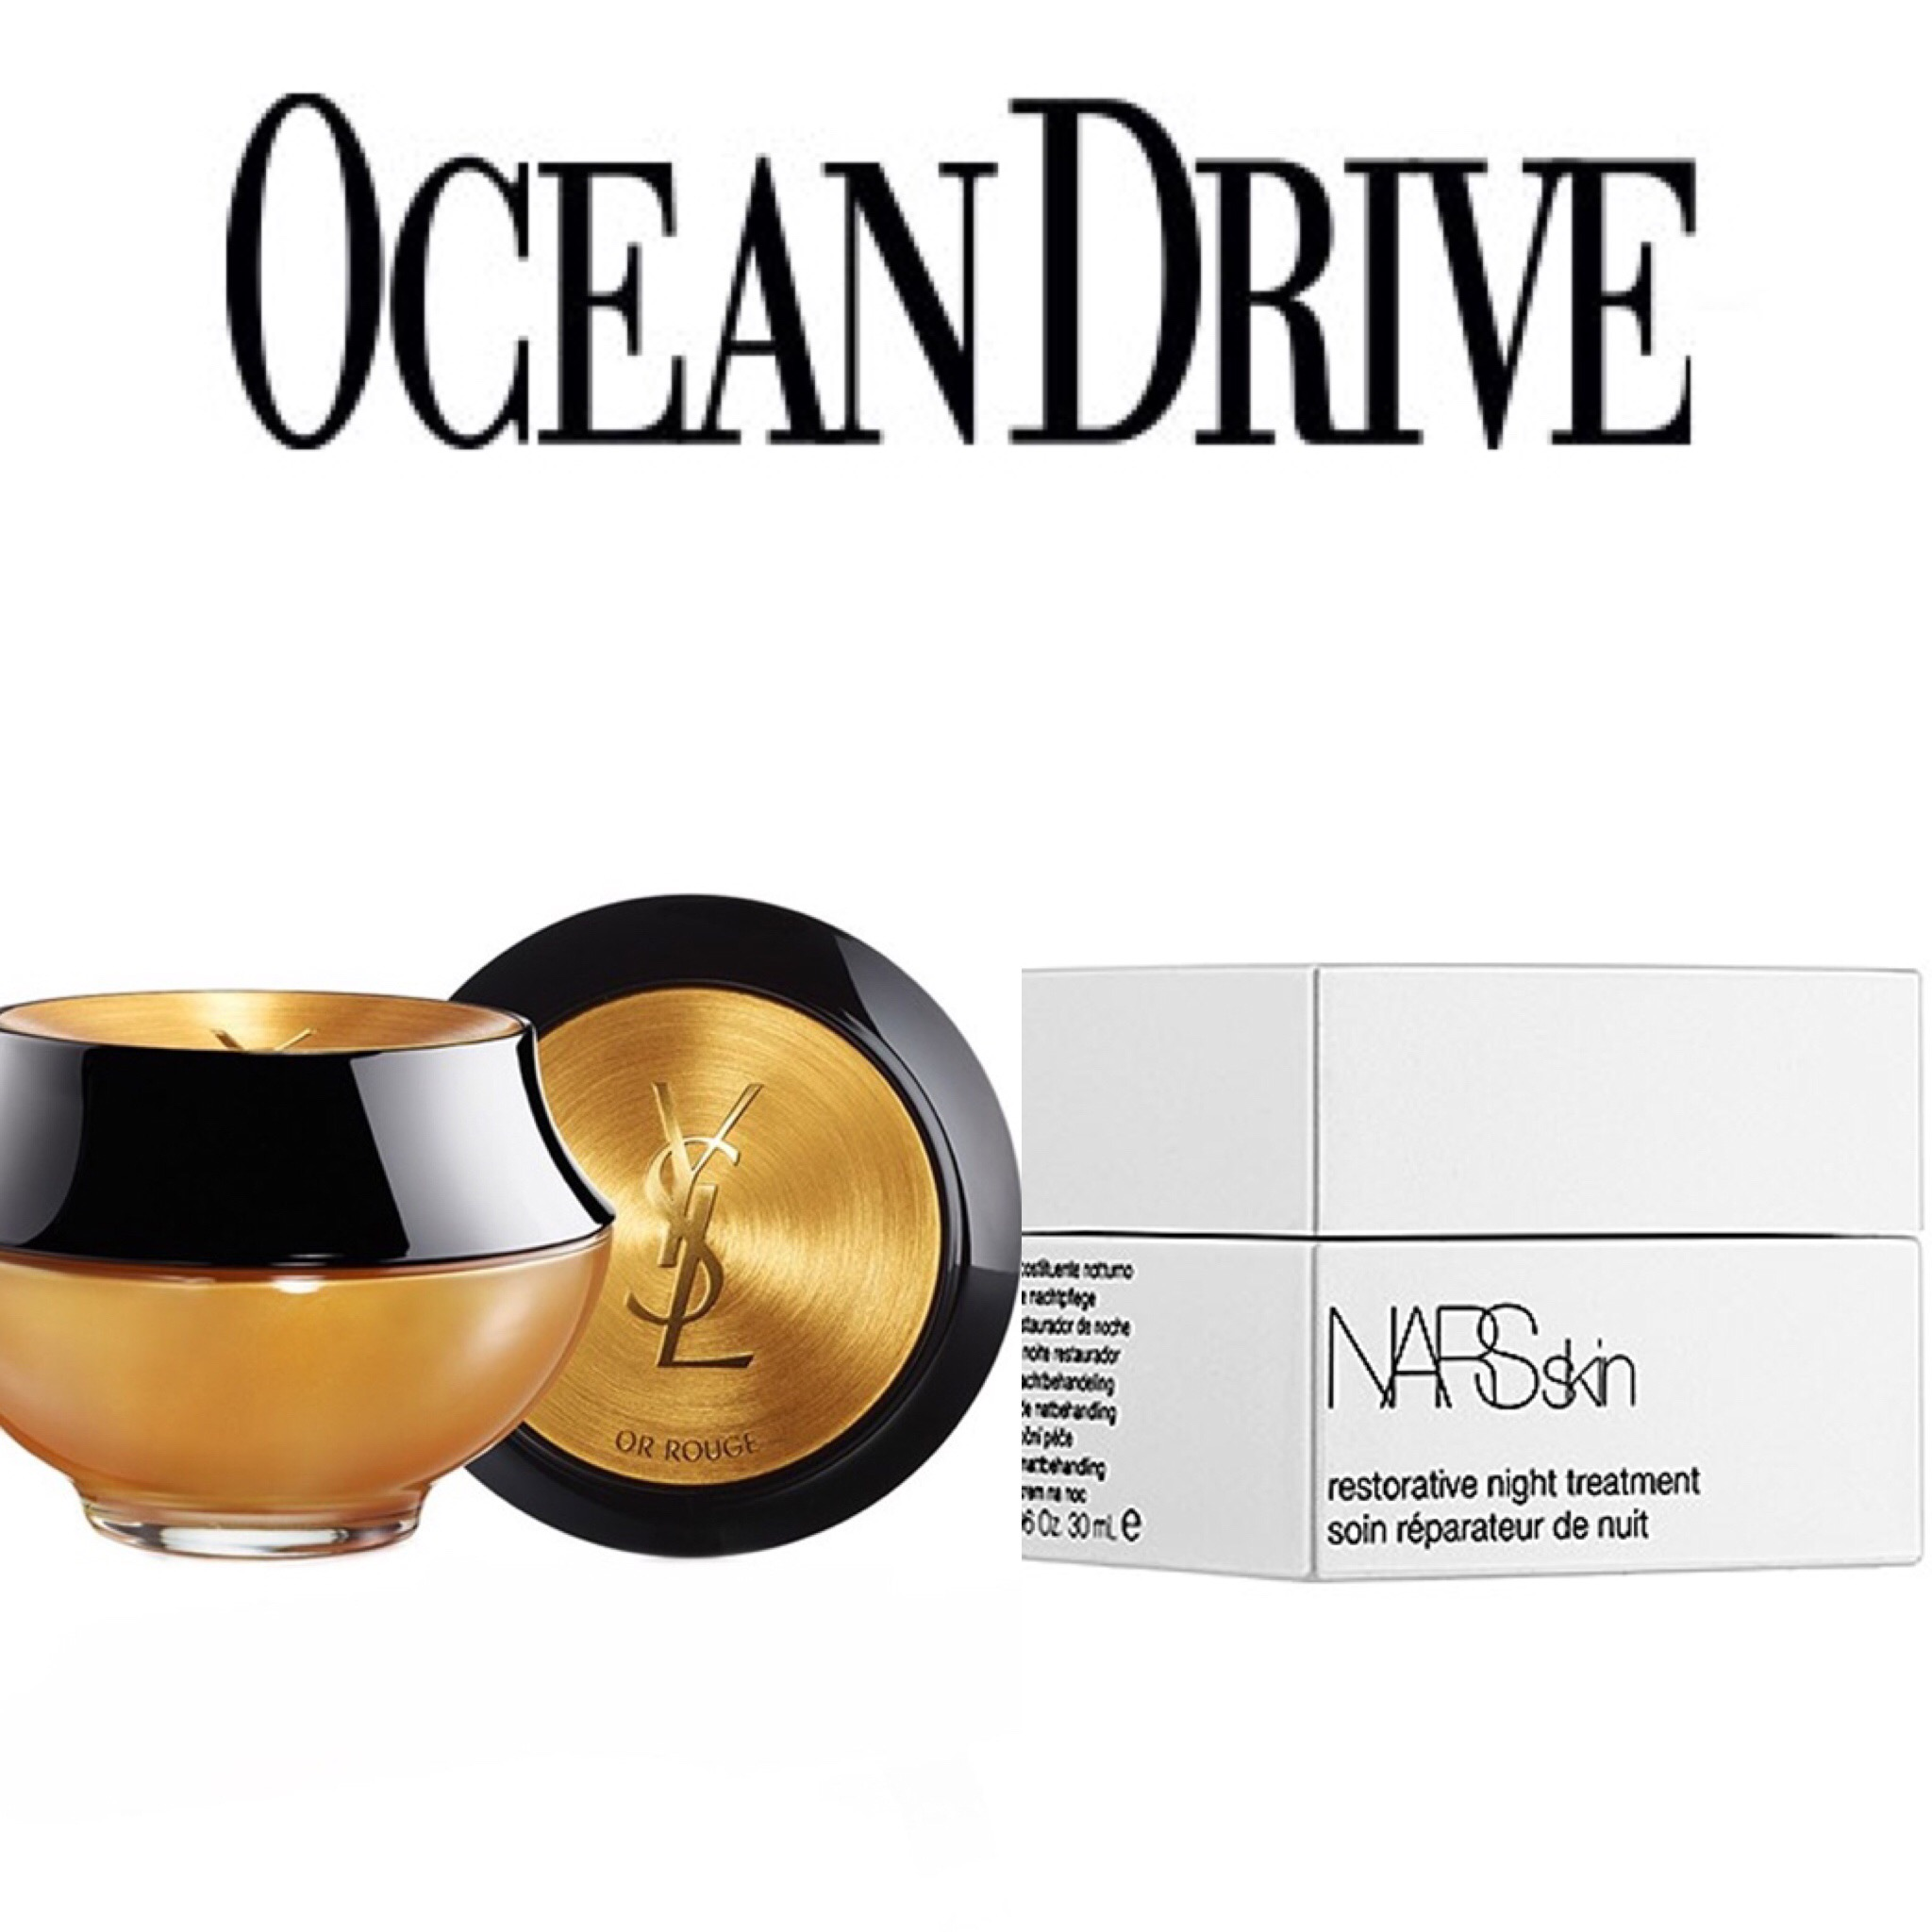 https://oceandrive.com/luxe-facial-treatments-to-use-while-you-sleep